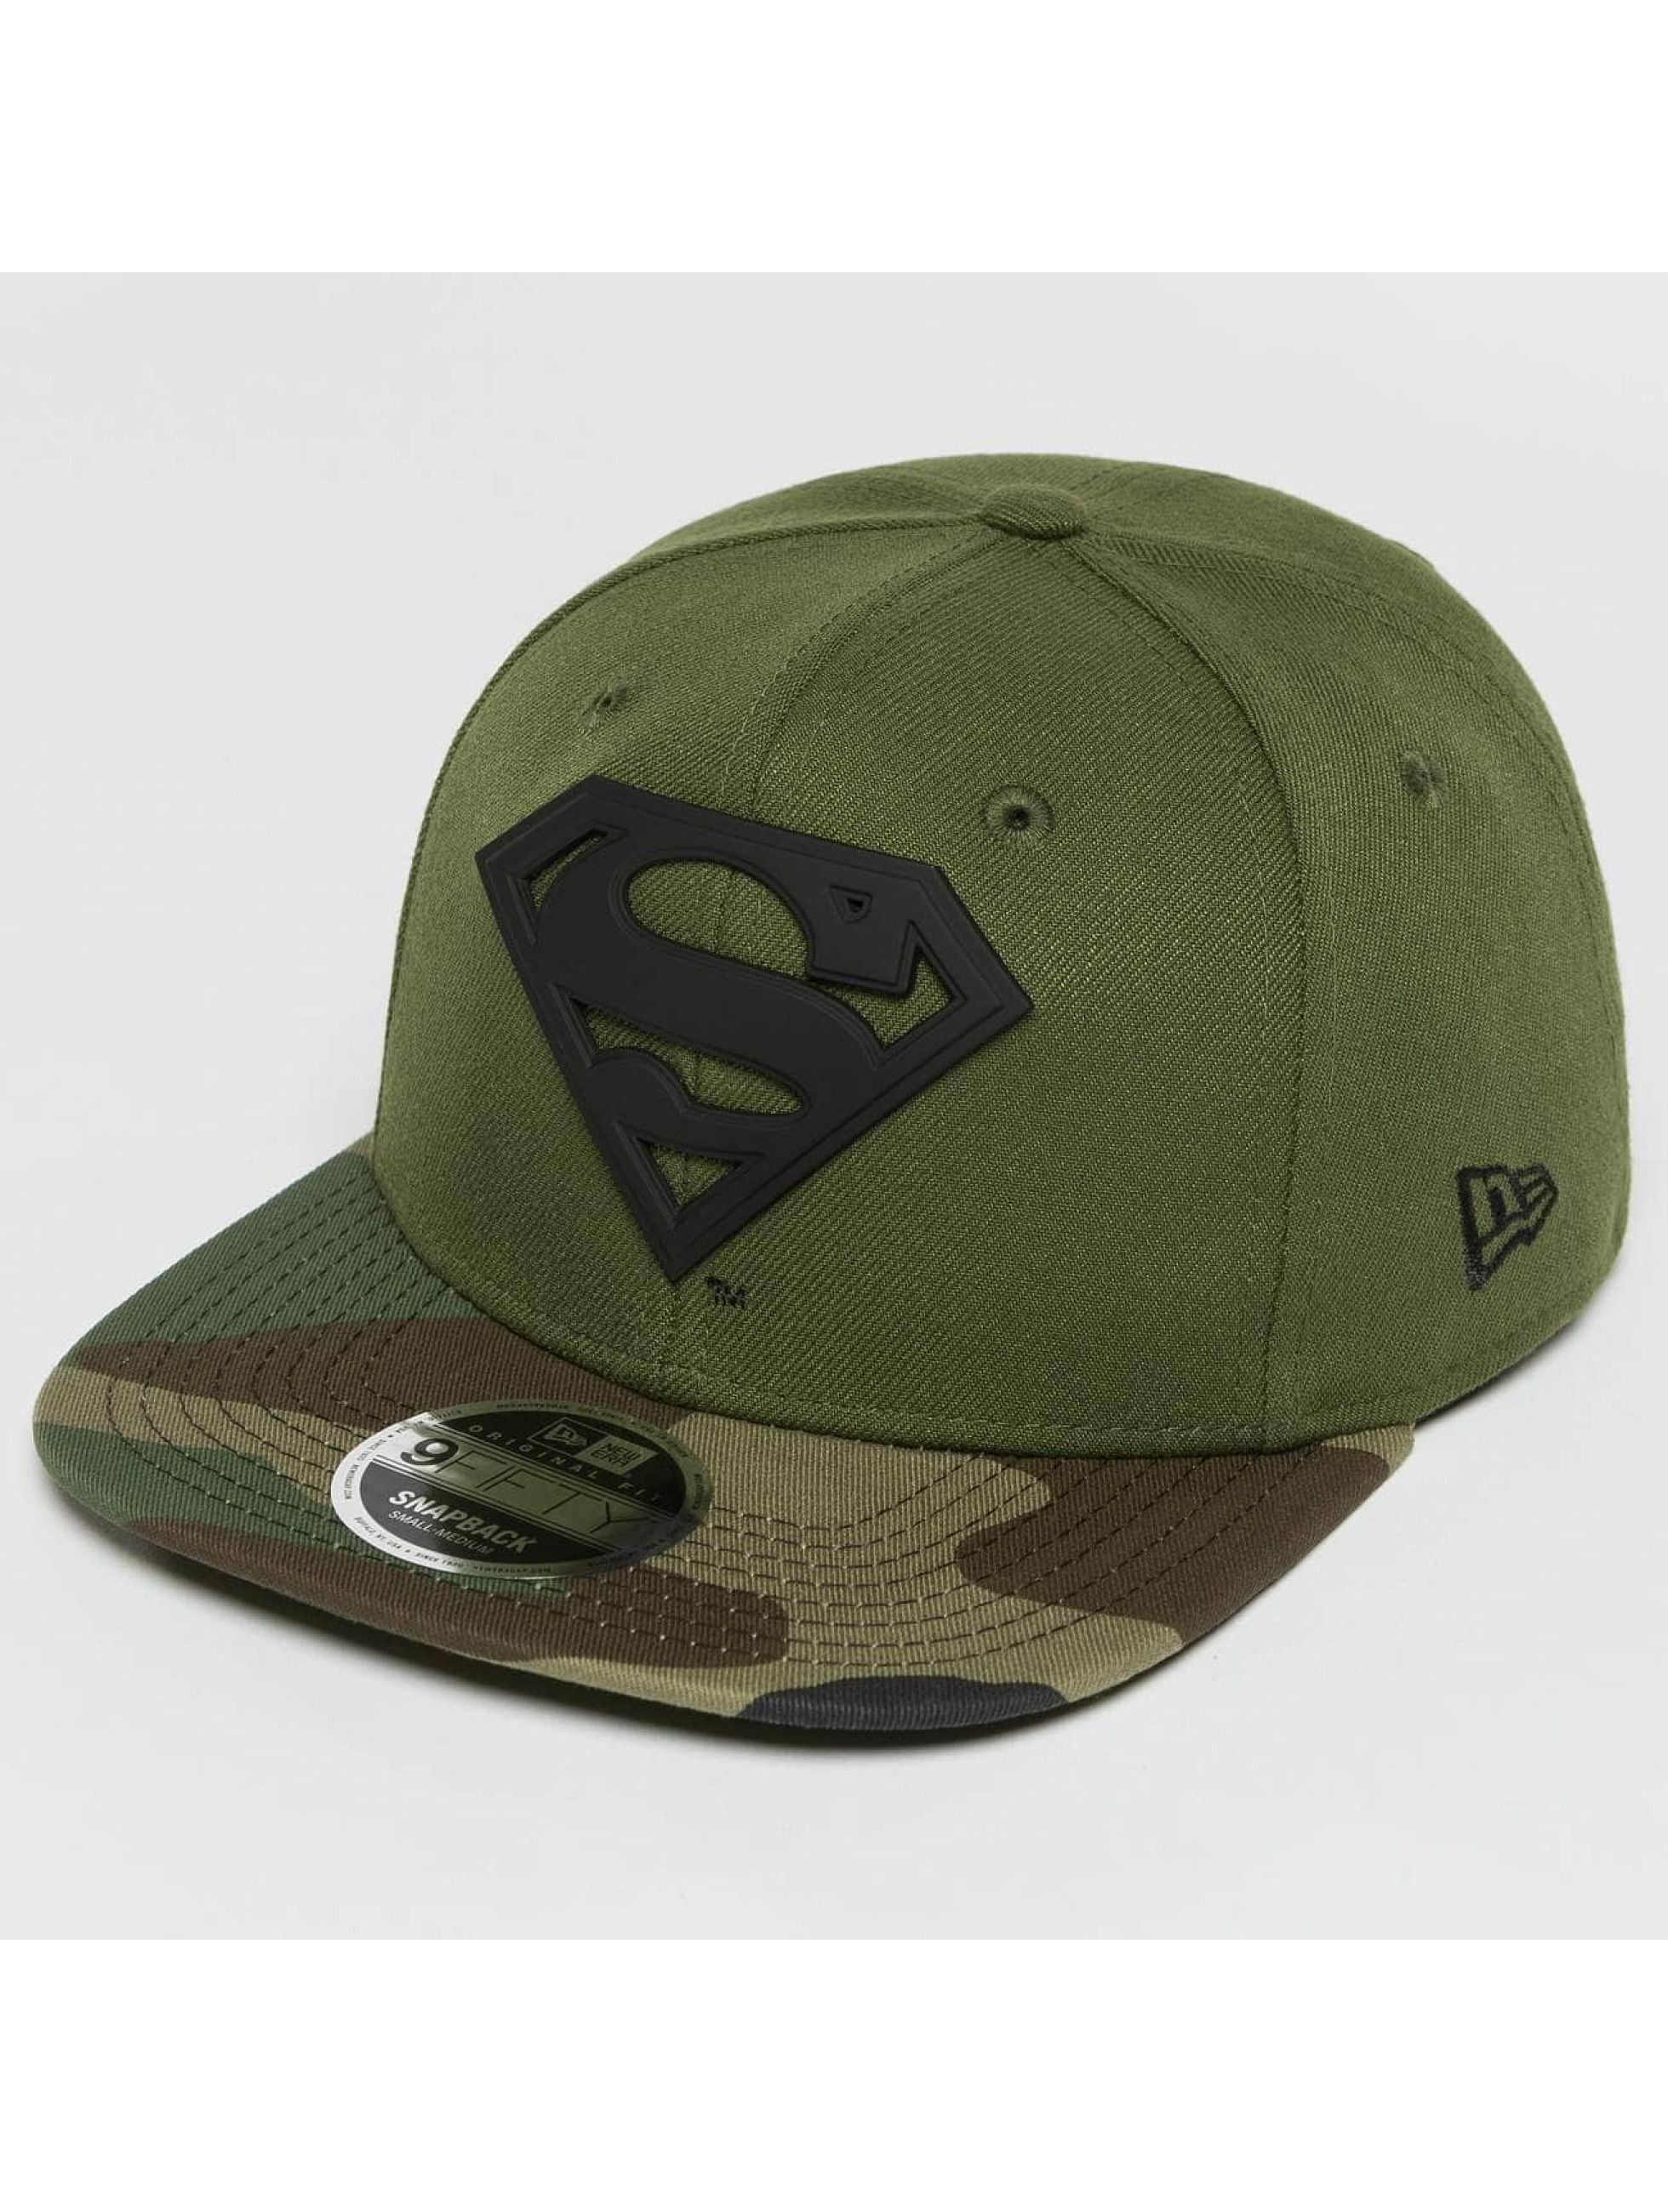 New Era Snapback Cap Camo MTL Hero Superman 9Fifty grün